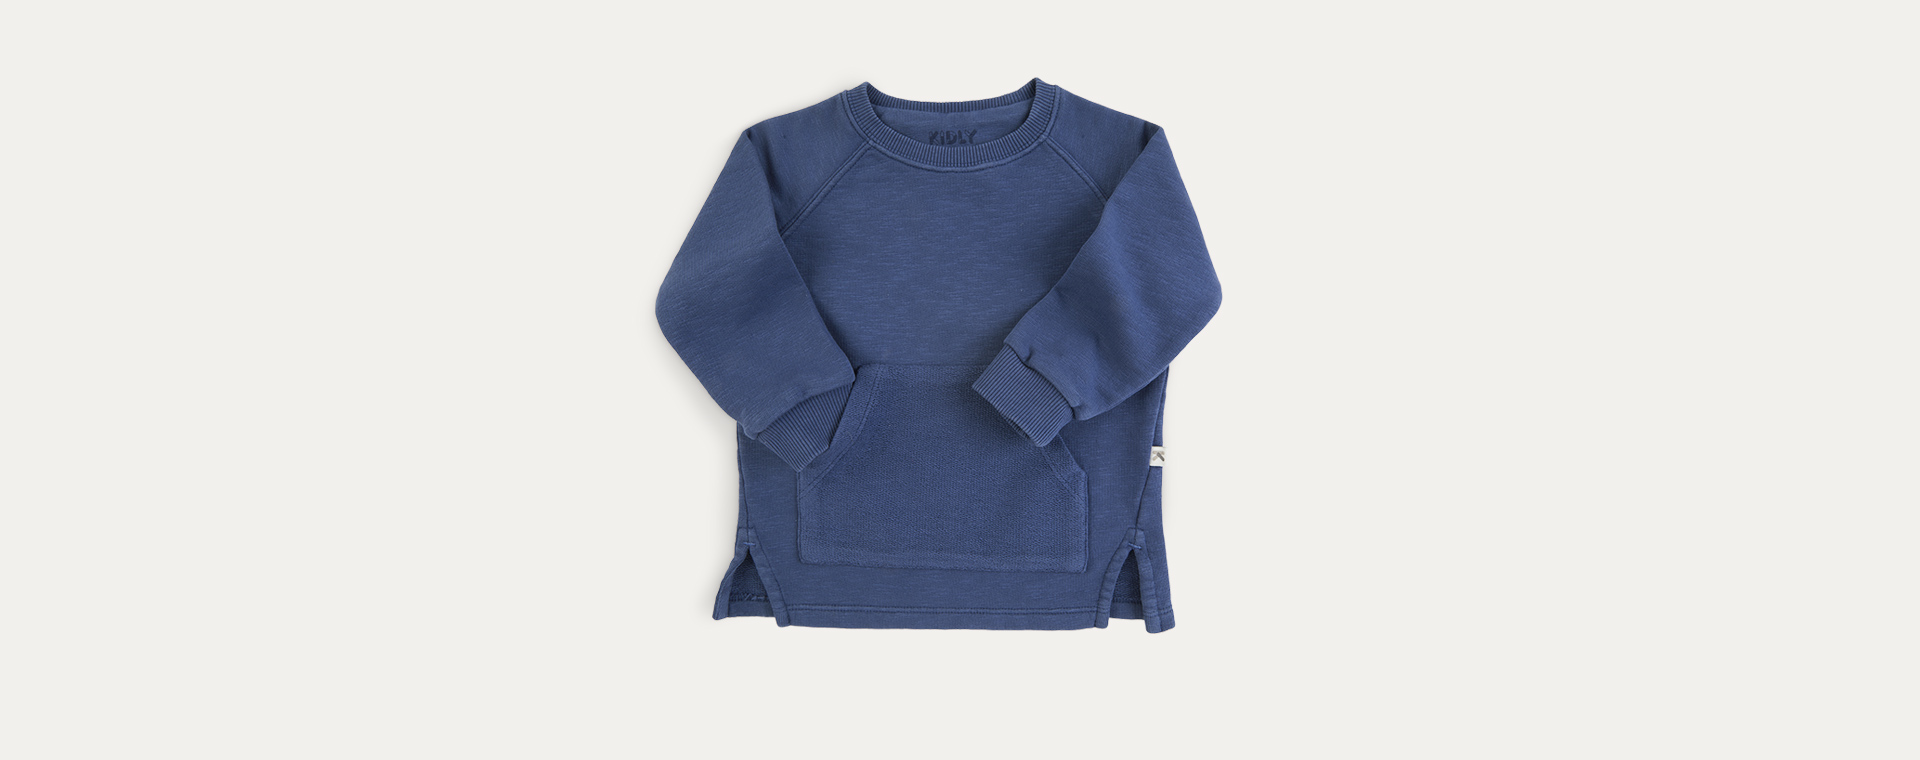 Navy KIDLY Label Organic Easy Sweatshirt